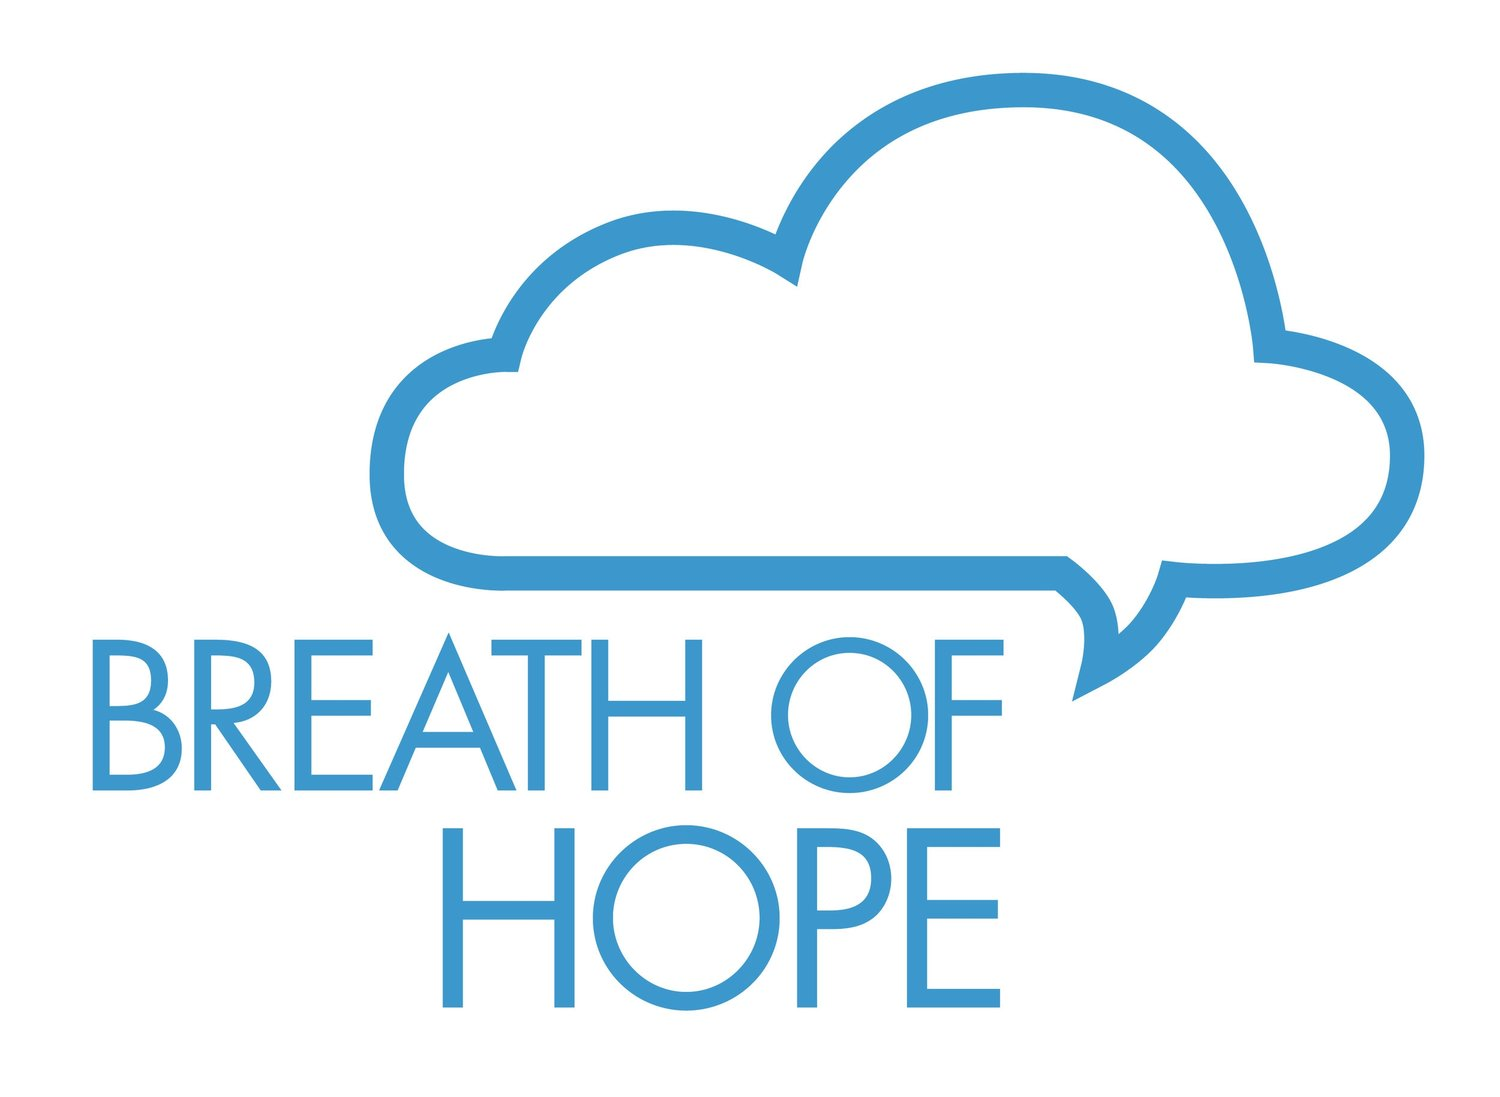 Breath of Hope Ohio